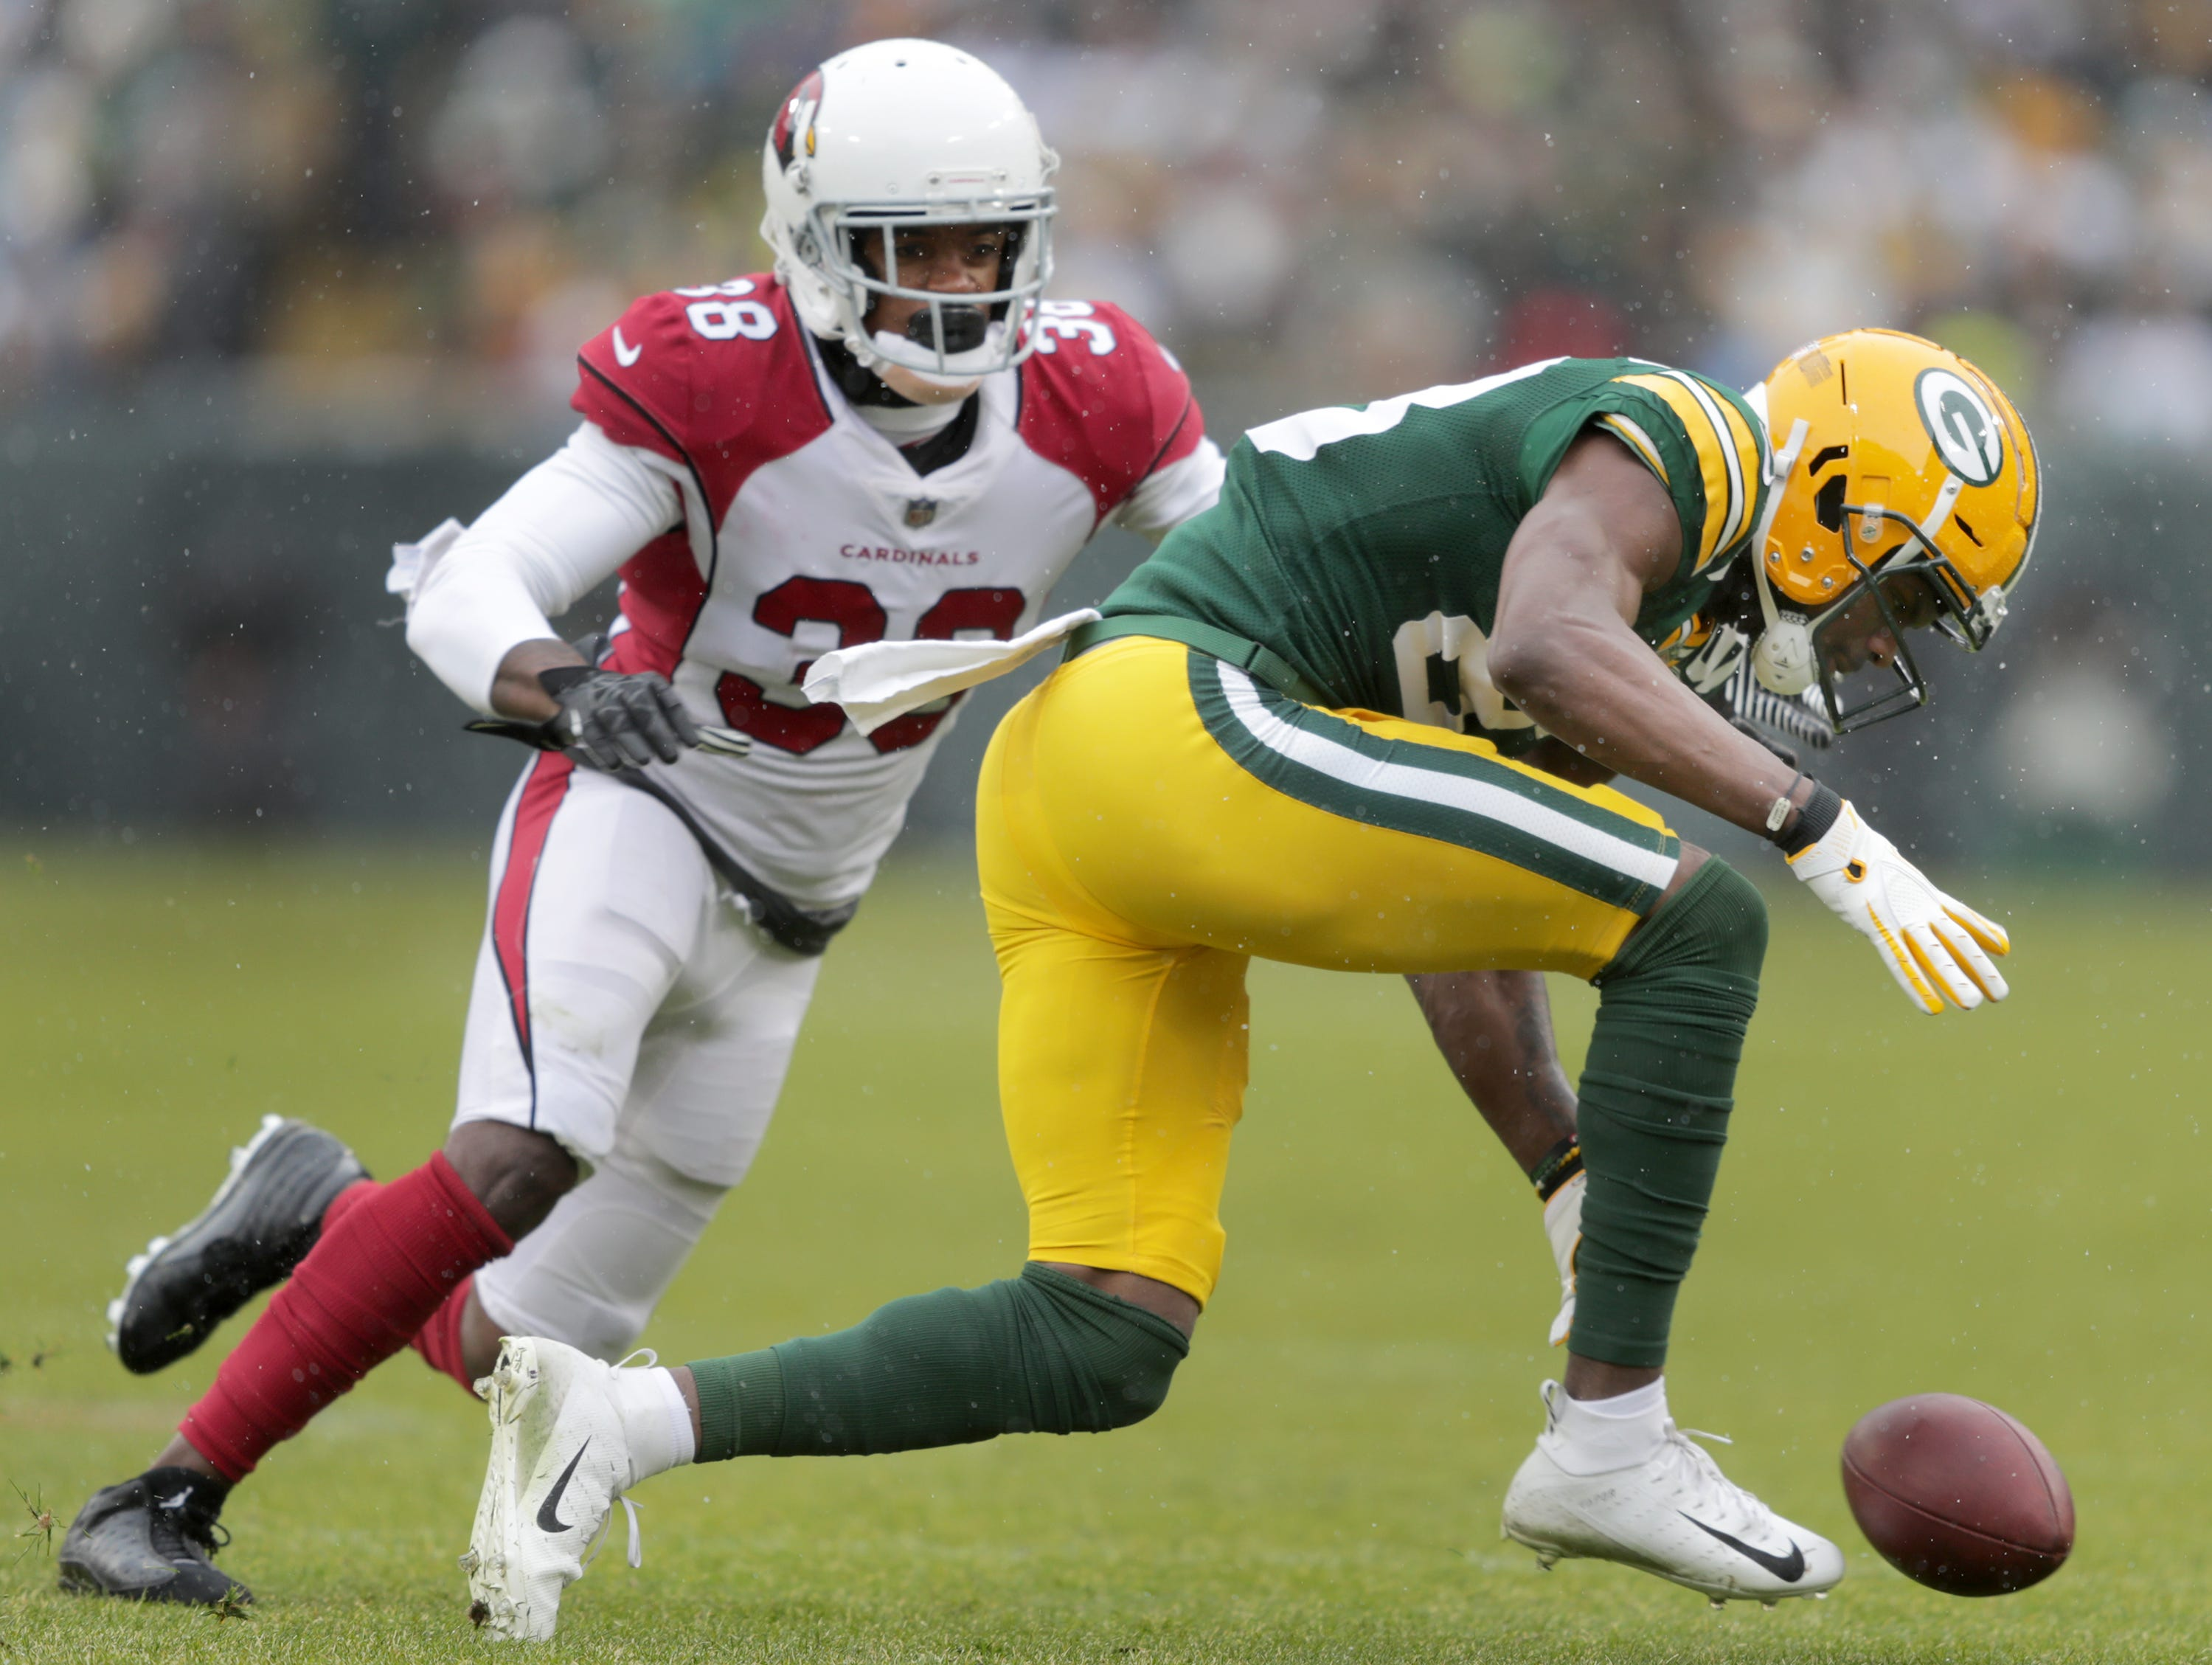 Green Bay Packers wide receiver Marquez Valdes-Scantling agfainst Arizona Cardinals defensive back David Amerson during their football game on Sunday, December 2, 2018, at Lambeau Field in Green Bay, Wis.